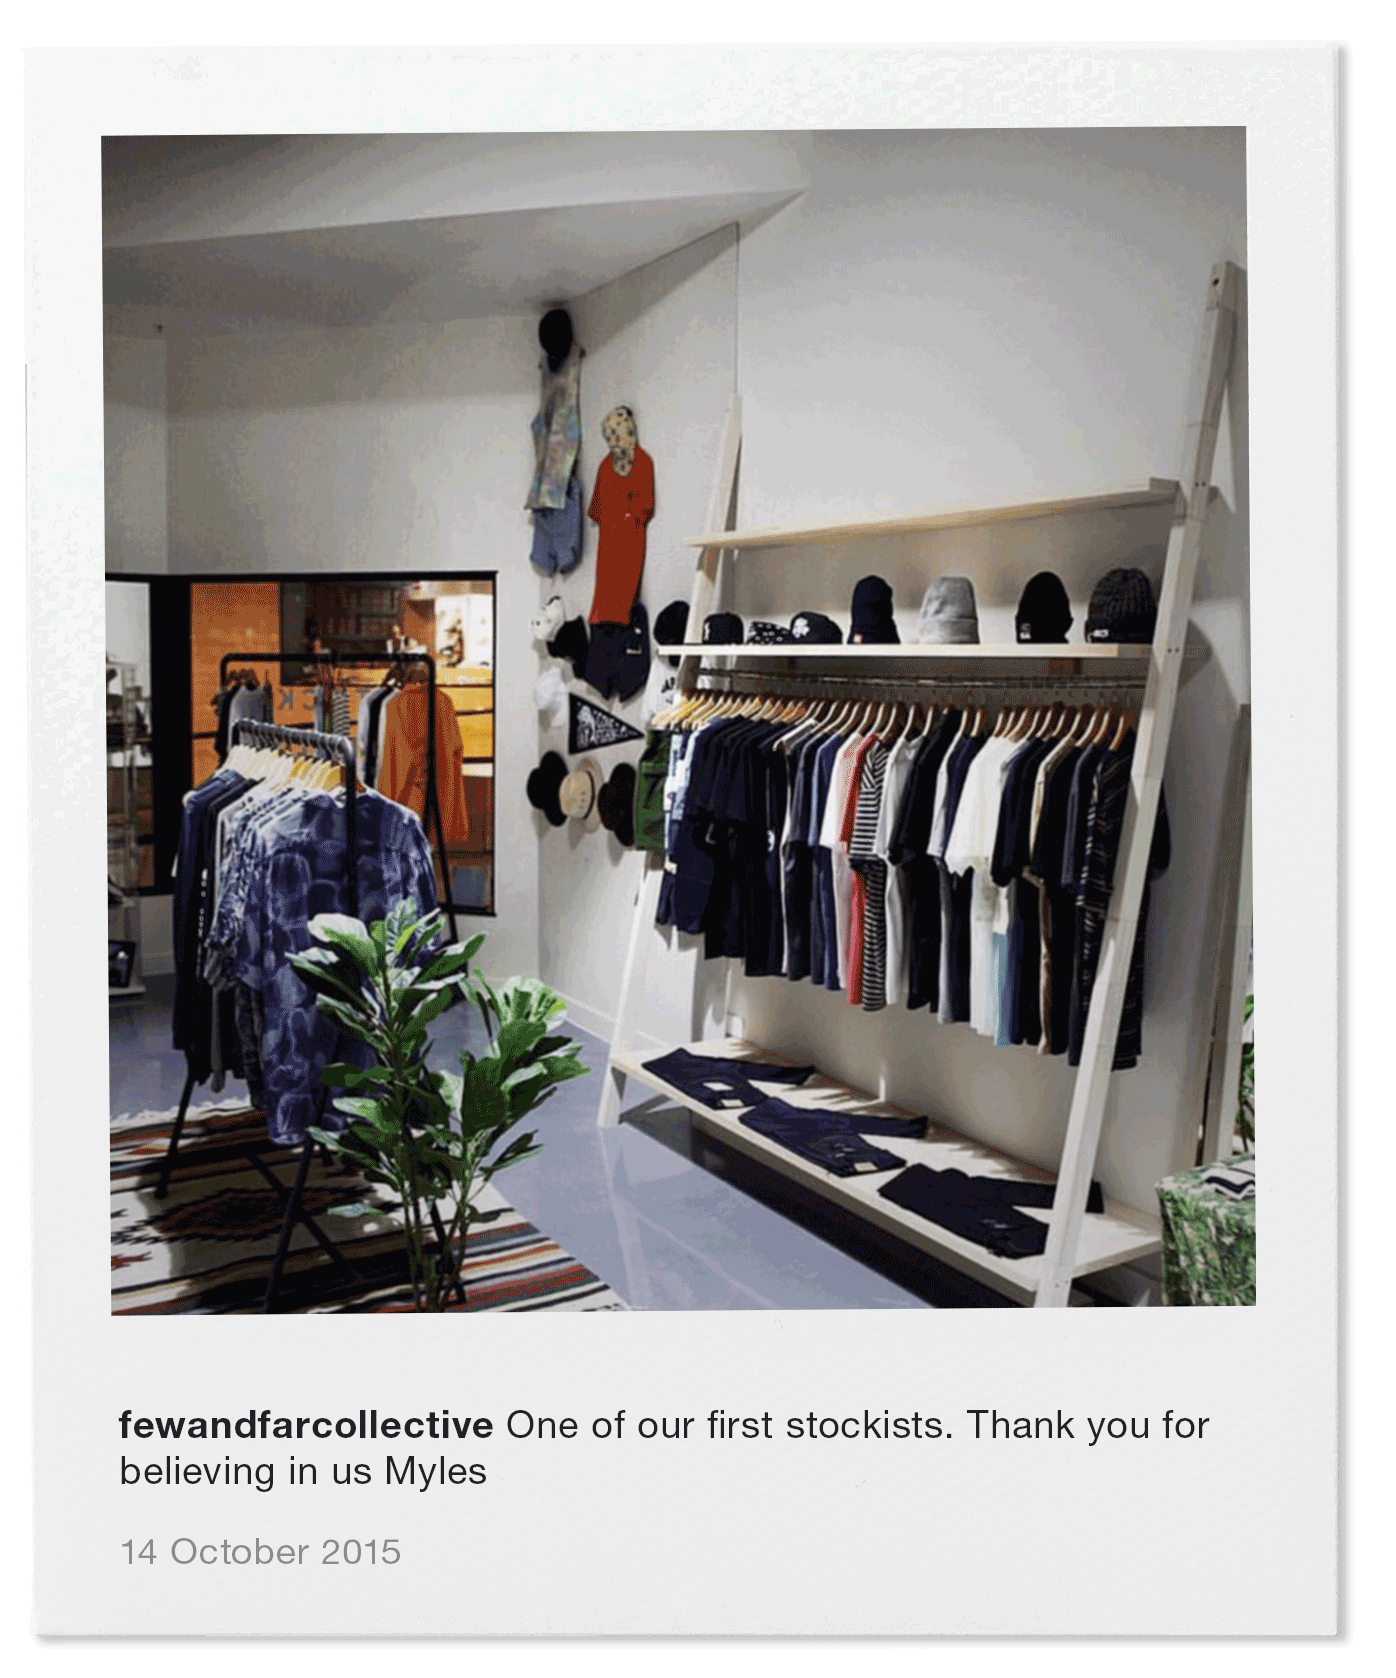 One of our first stockists. Thank you for believing in us Myles